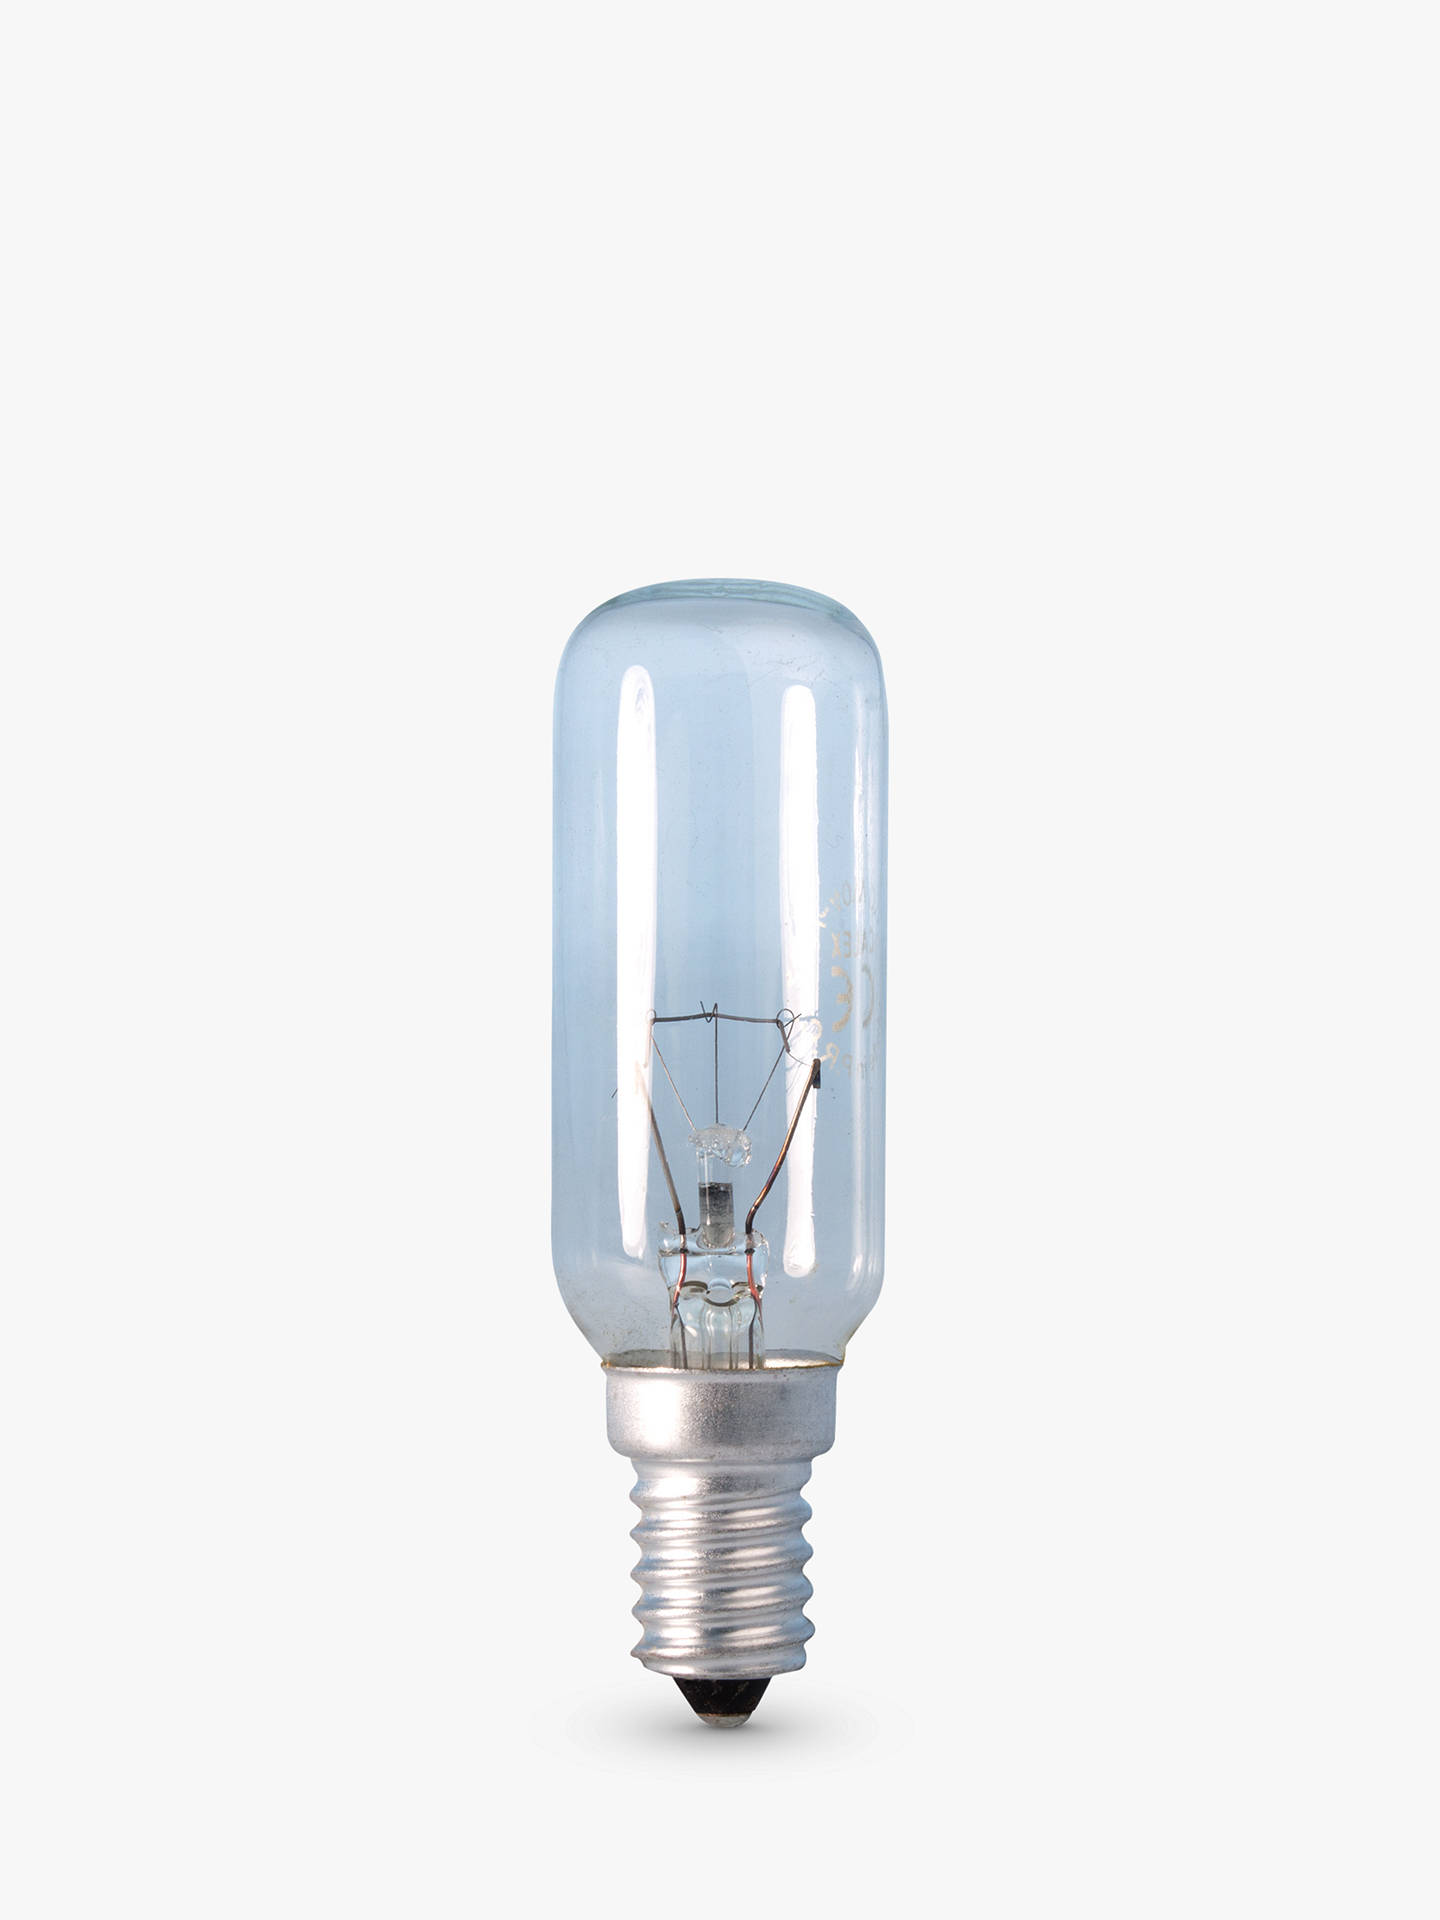 BuyCalex 28W SES Cookhood Eco Halogen Tube Bulb, Pack of 2 Online at johnlewis.com